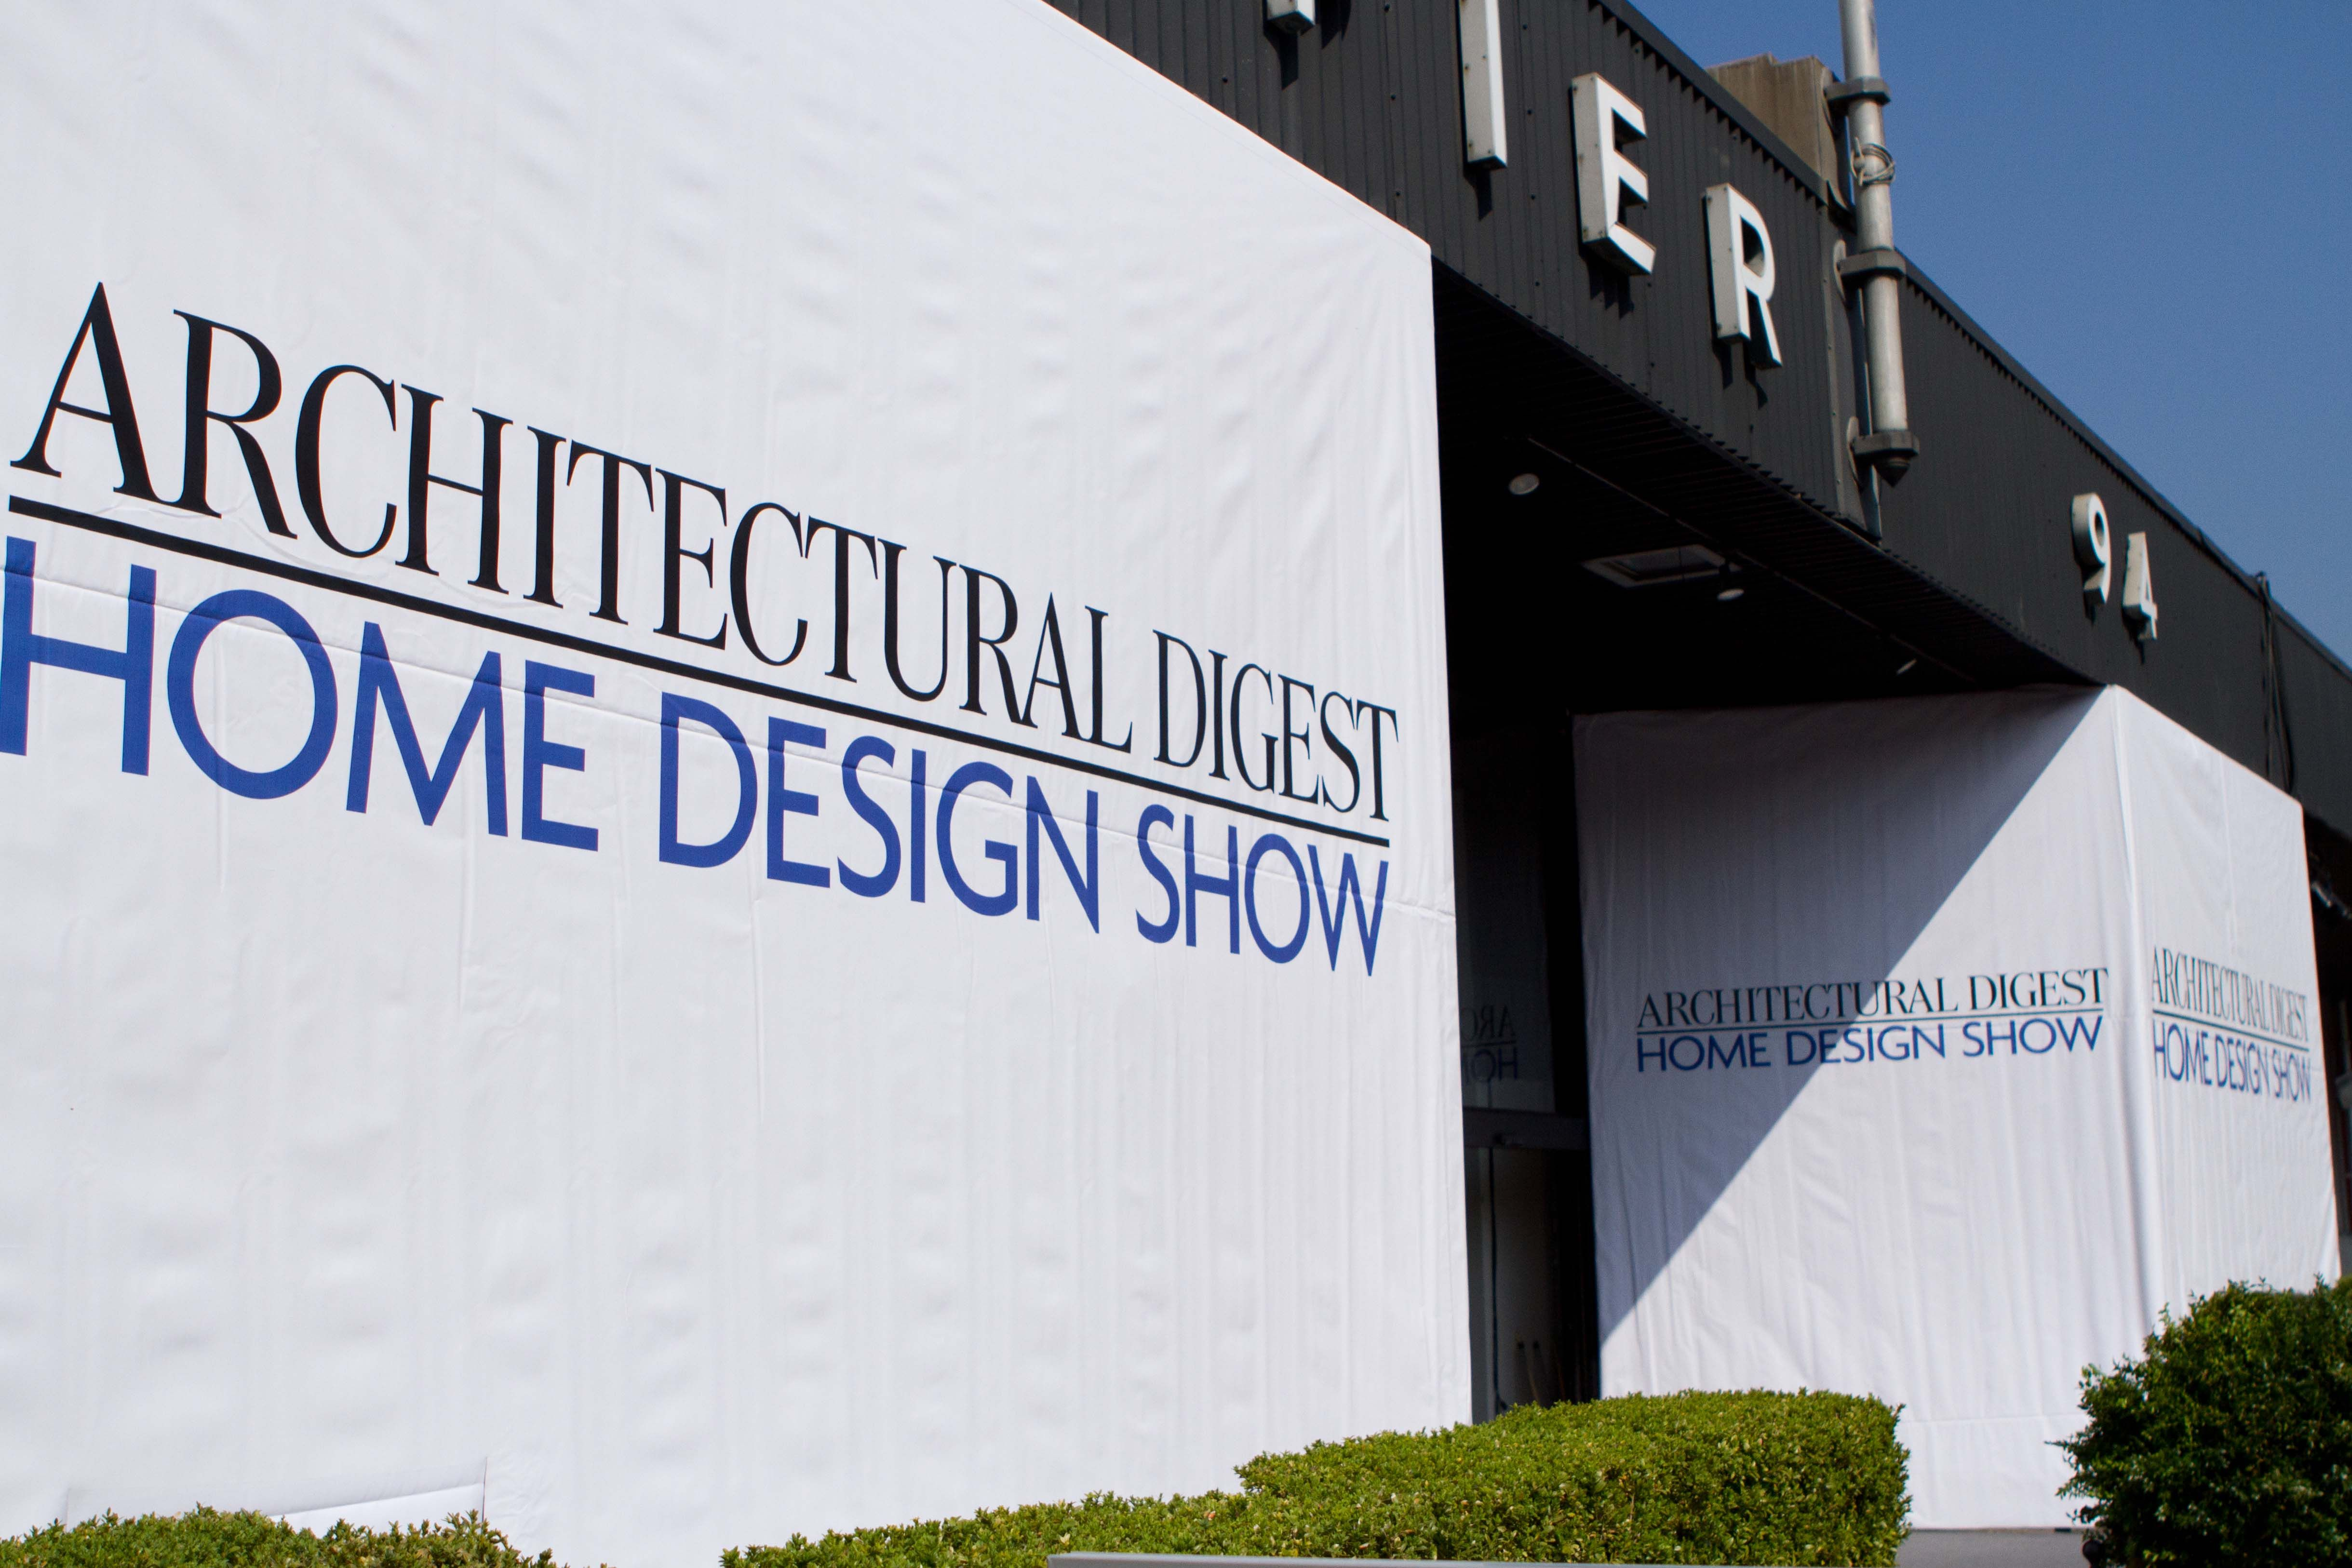 What you can expect from AD Show Ads Architectural digest and Flow